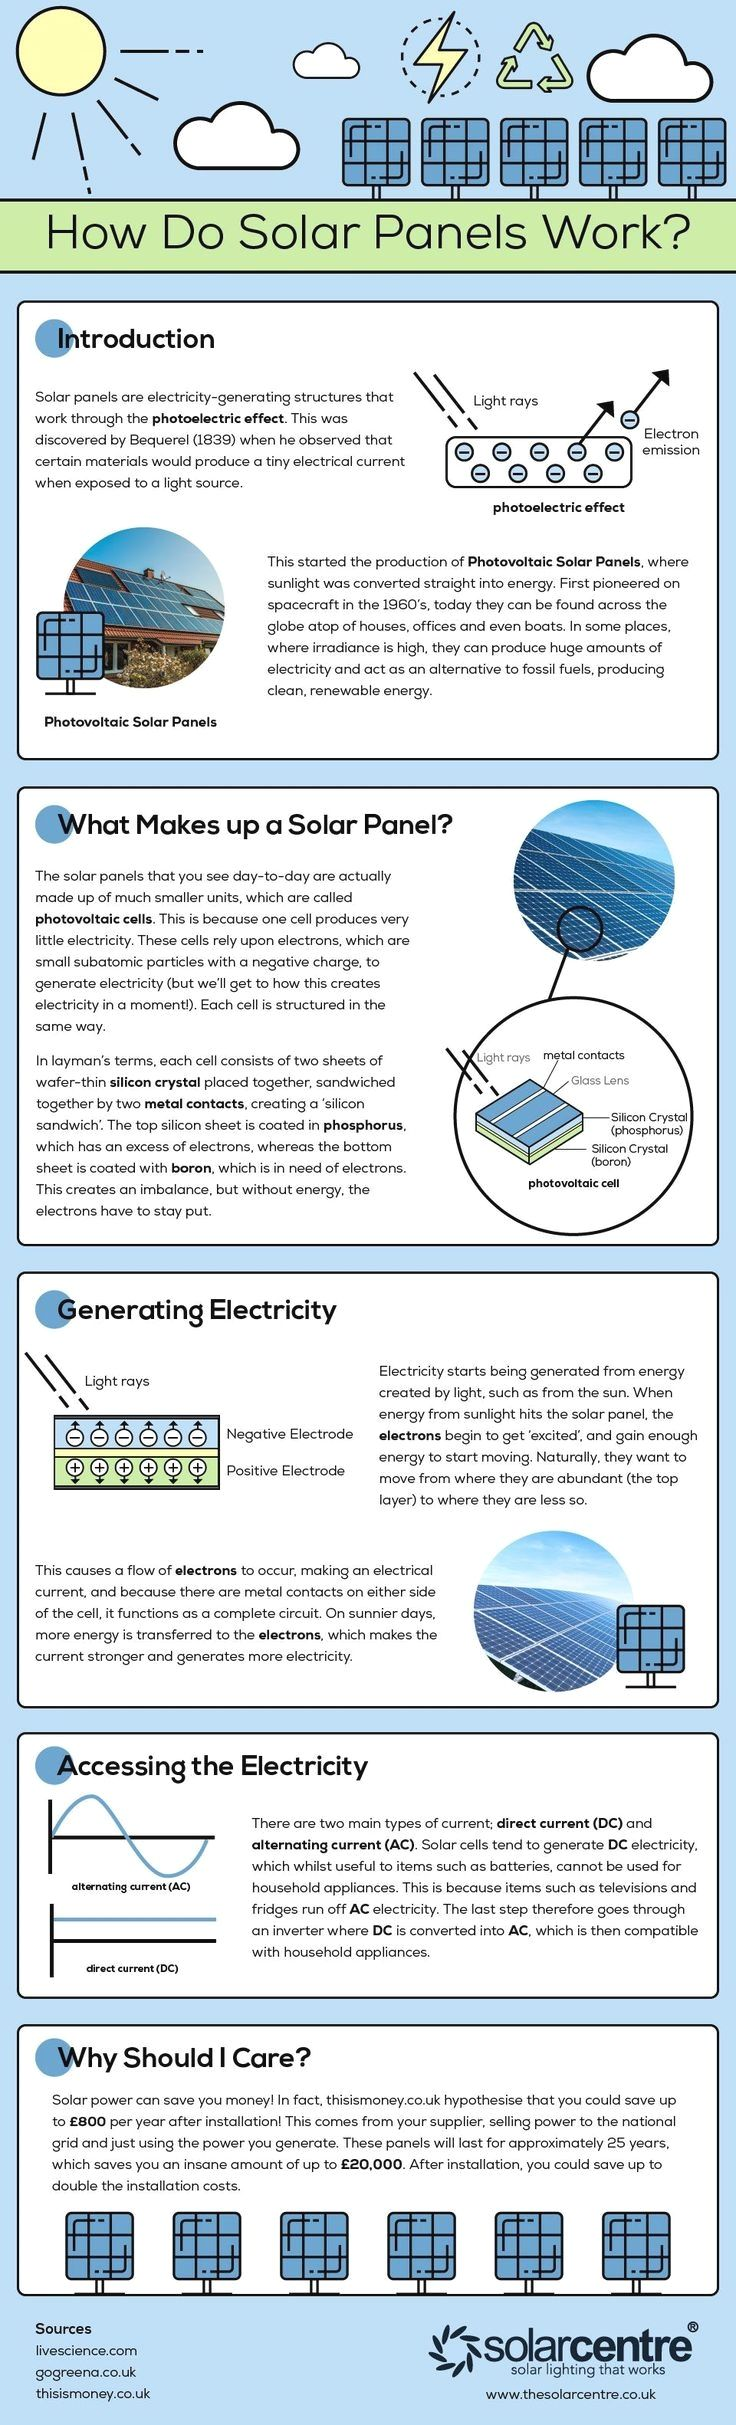 Renewable Energy Choosing To Go Earth Friendly By Converting Simple Solar Power Diagram Is Now Being Regarded As A Solution The Planets Electricity